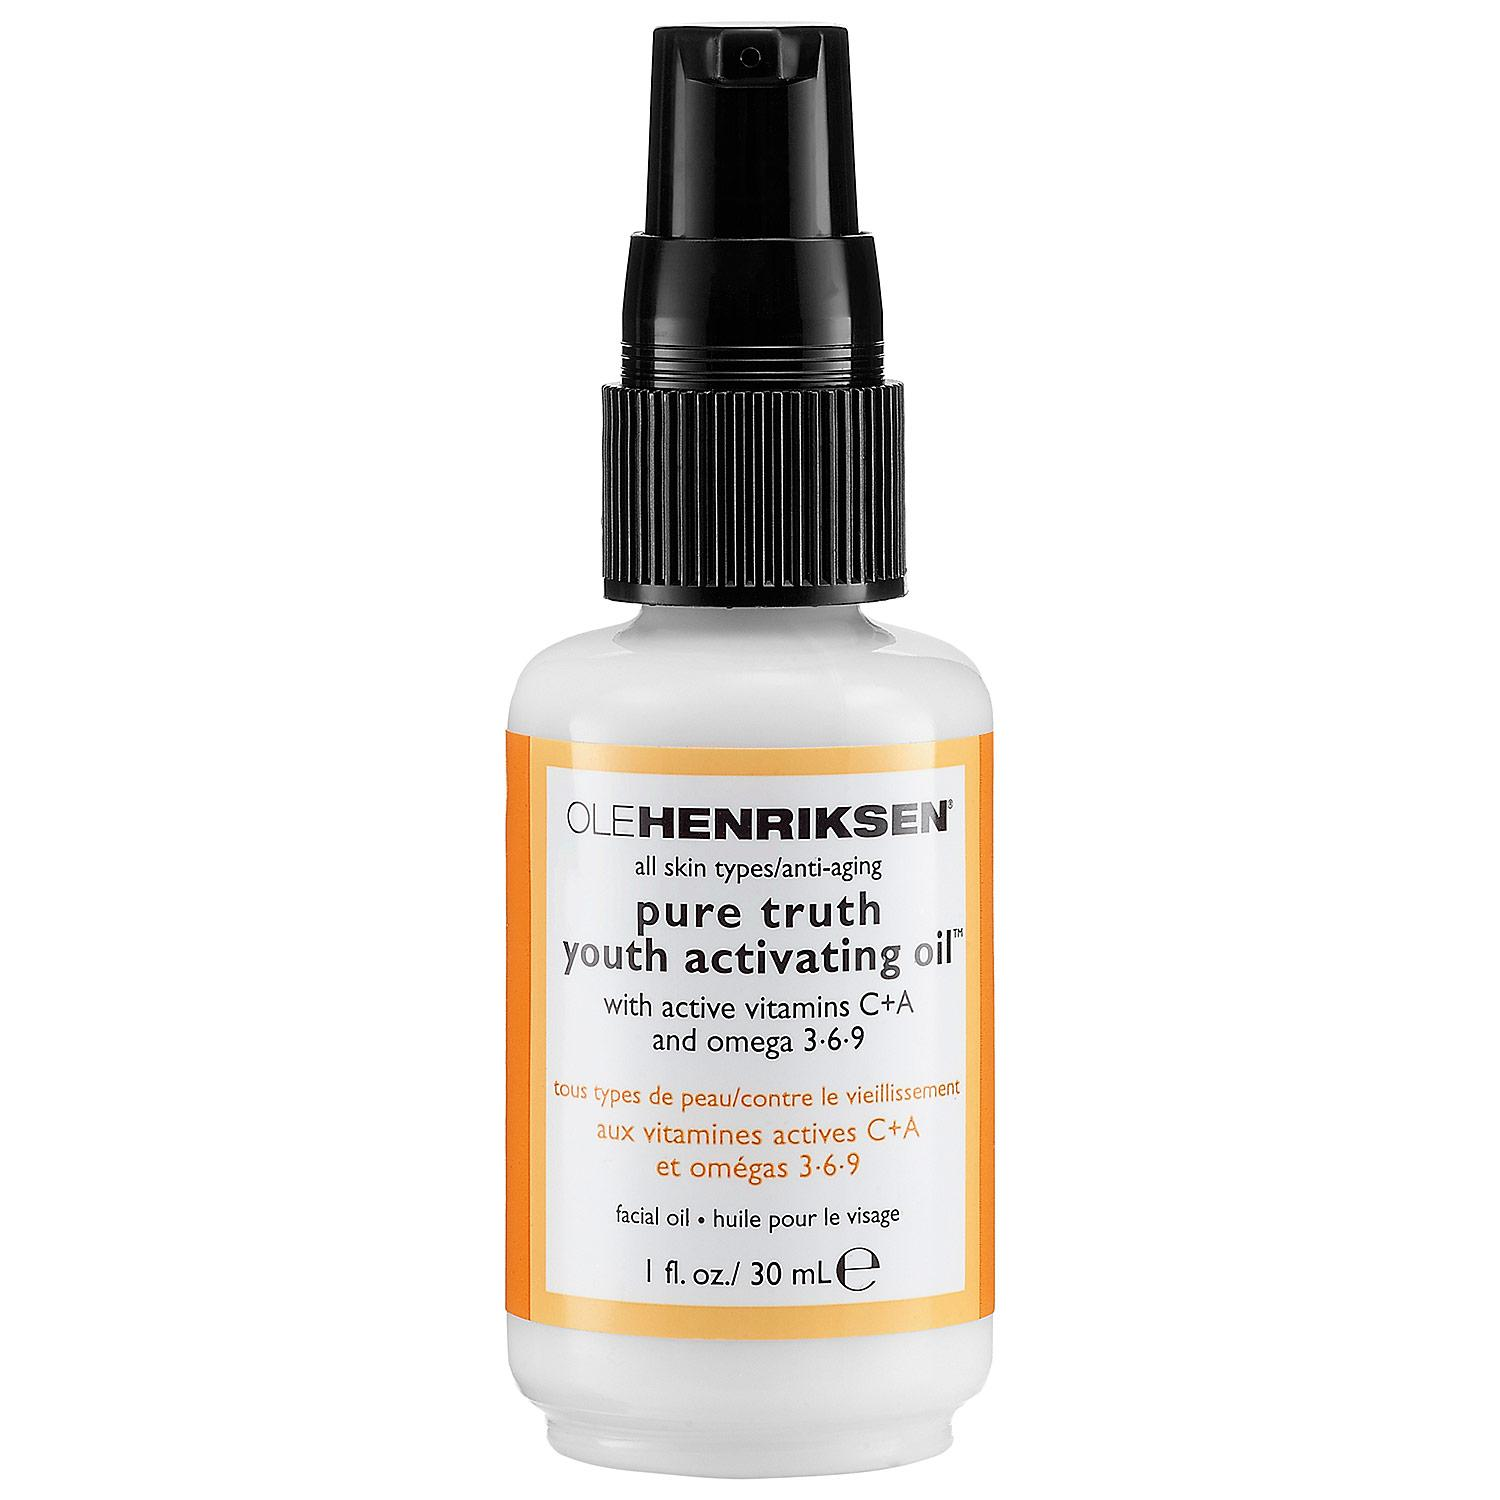 Pure Truth Vitamin C Youth Activating Oil™